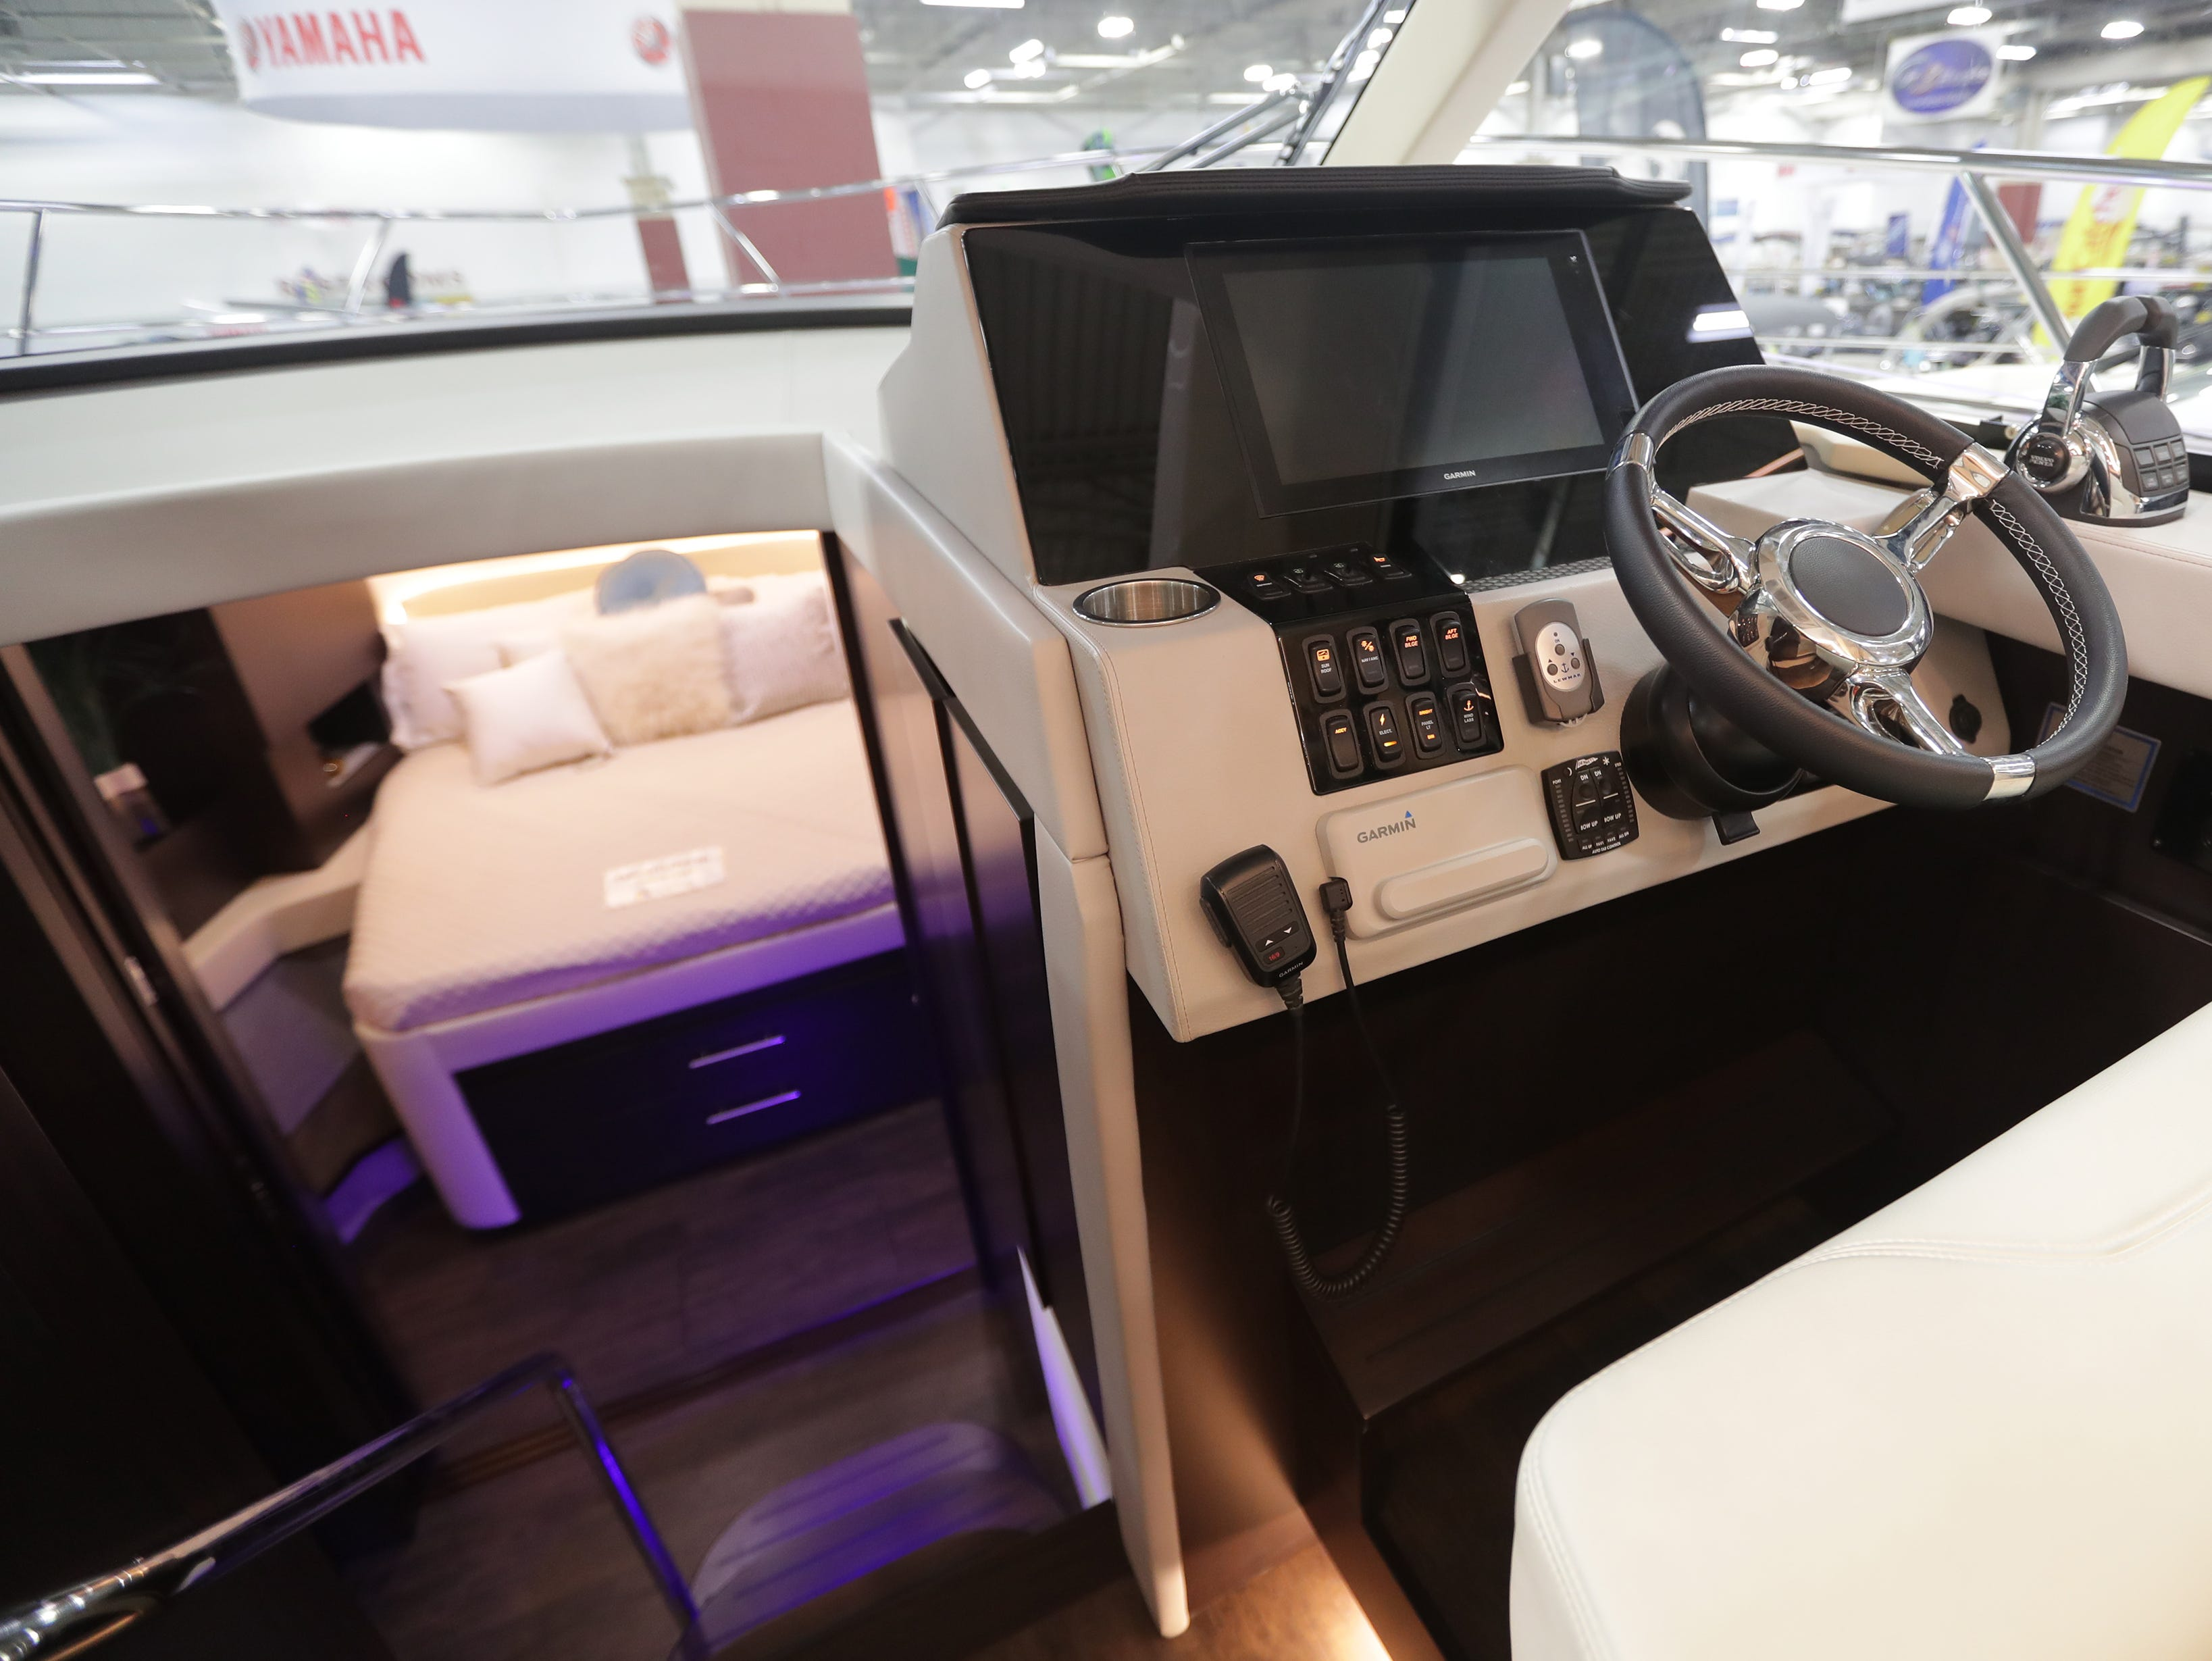 The helm of a 42-foot Regal Grande Coupe yacht, which lists for $725,000 at the Milwaukee Boat Show at State Fair Park in West Allis.